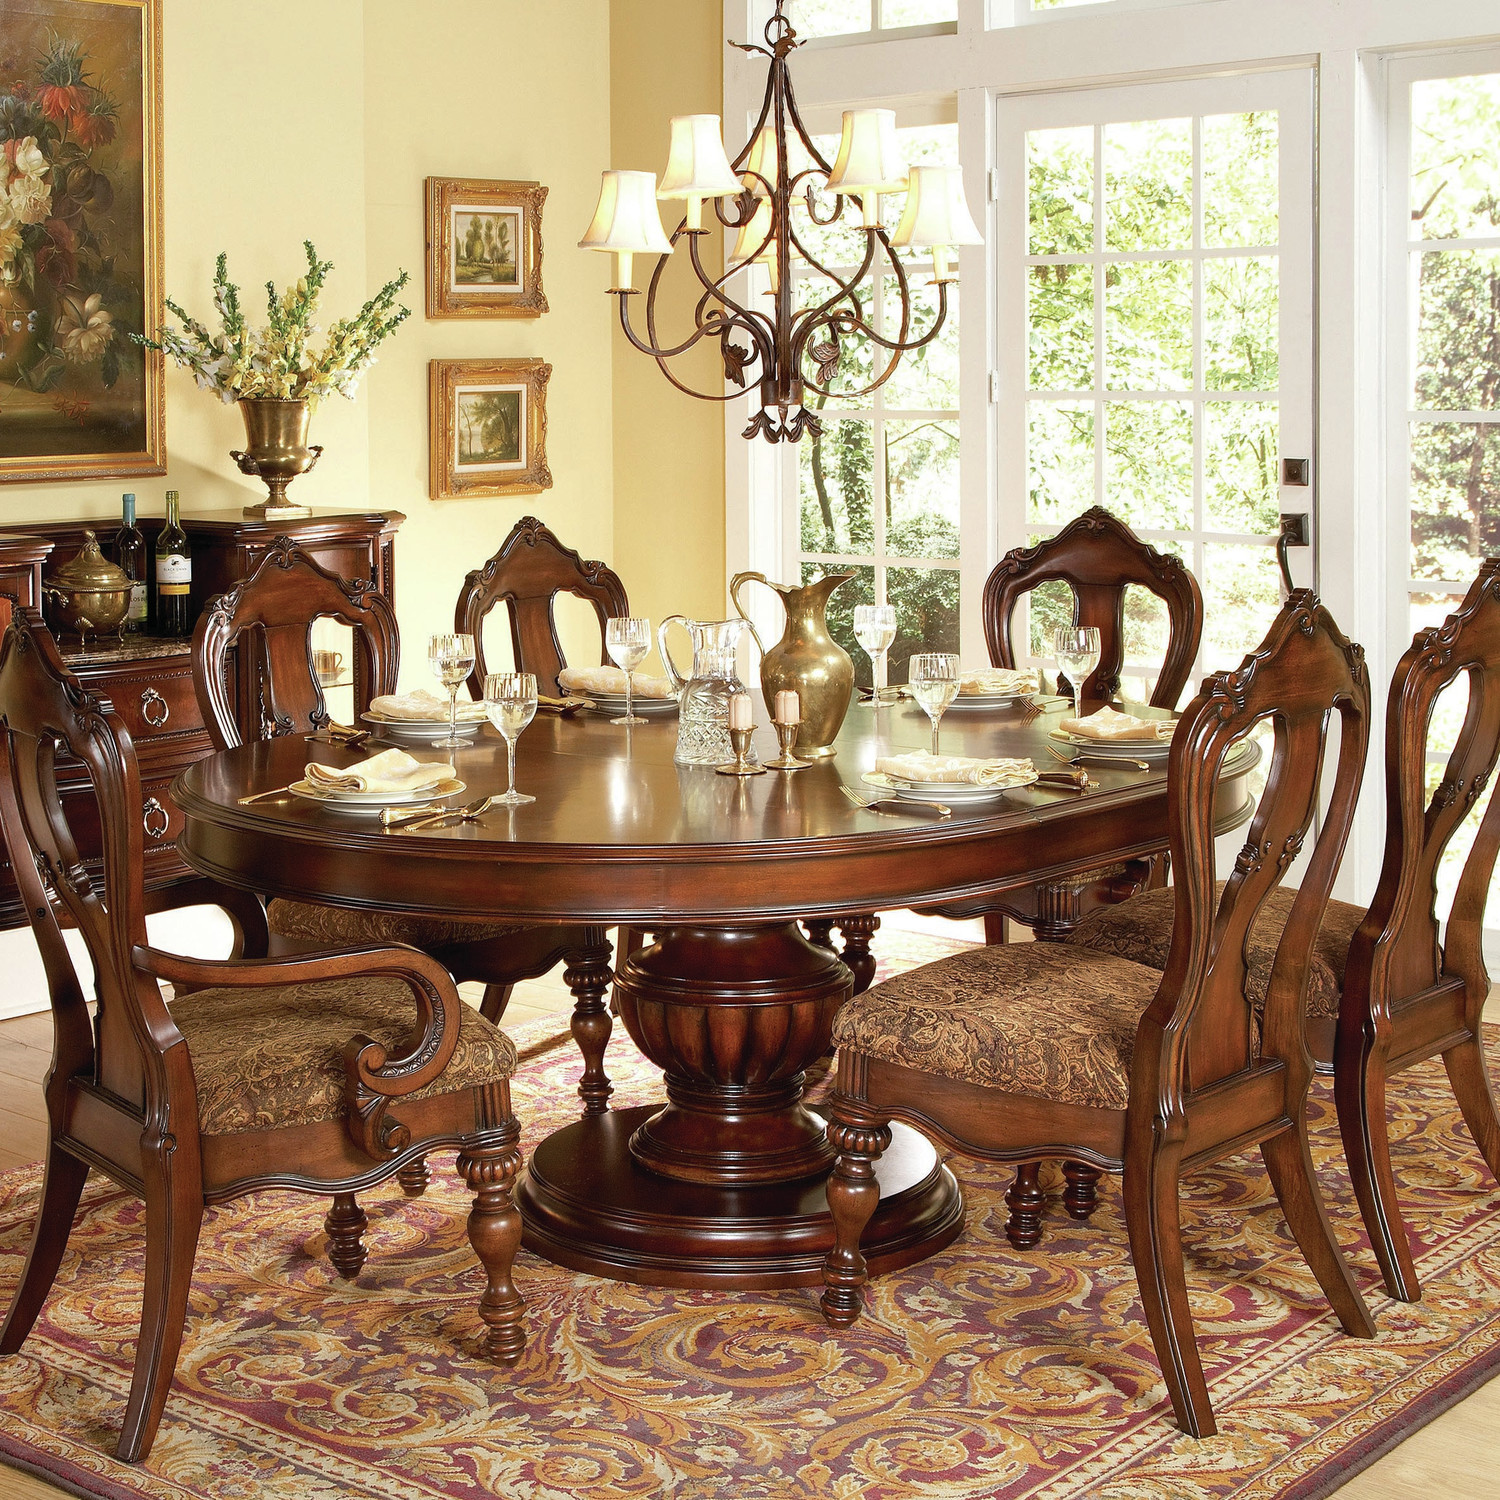 Getting a round dining room table for 6 by your own for Dining room table for 2